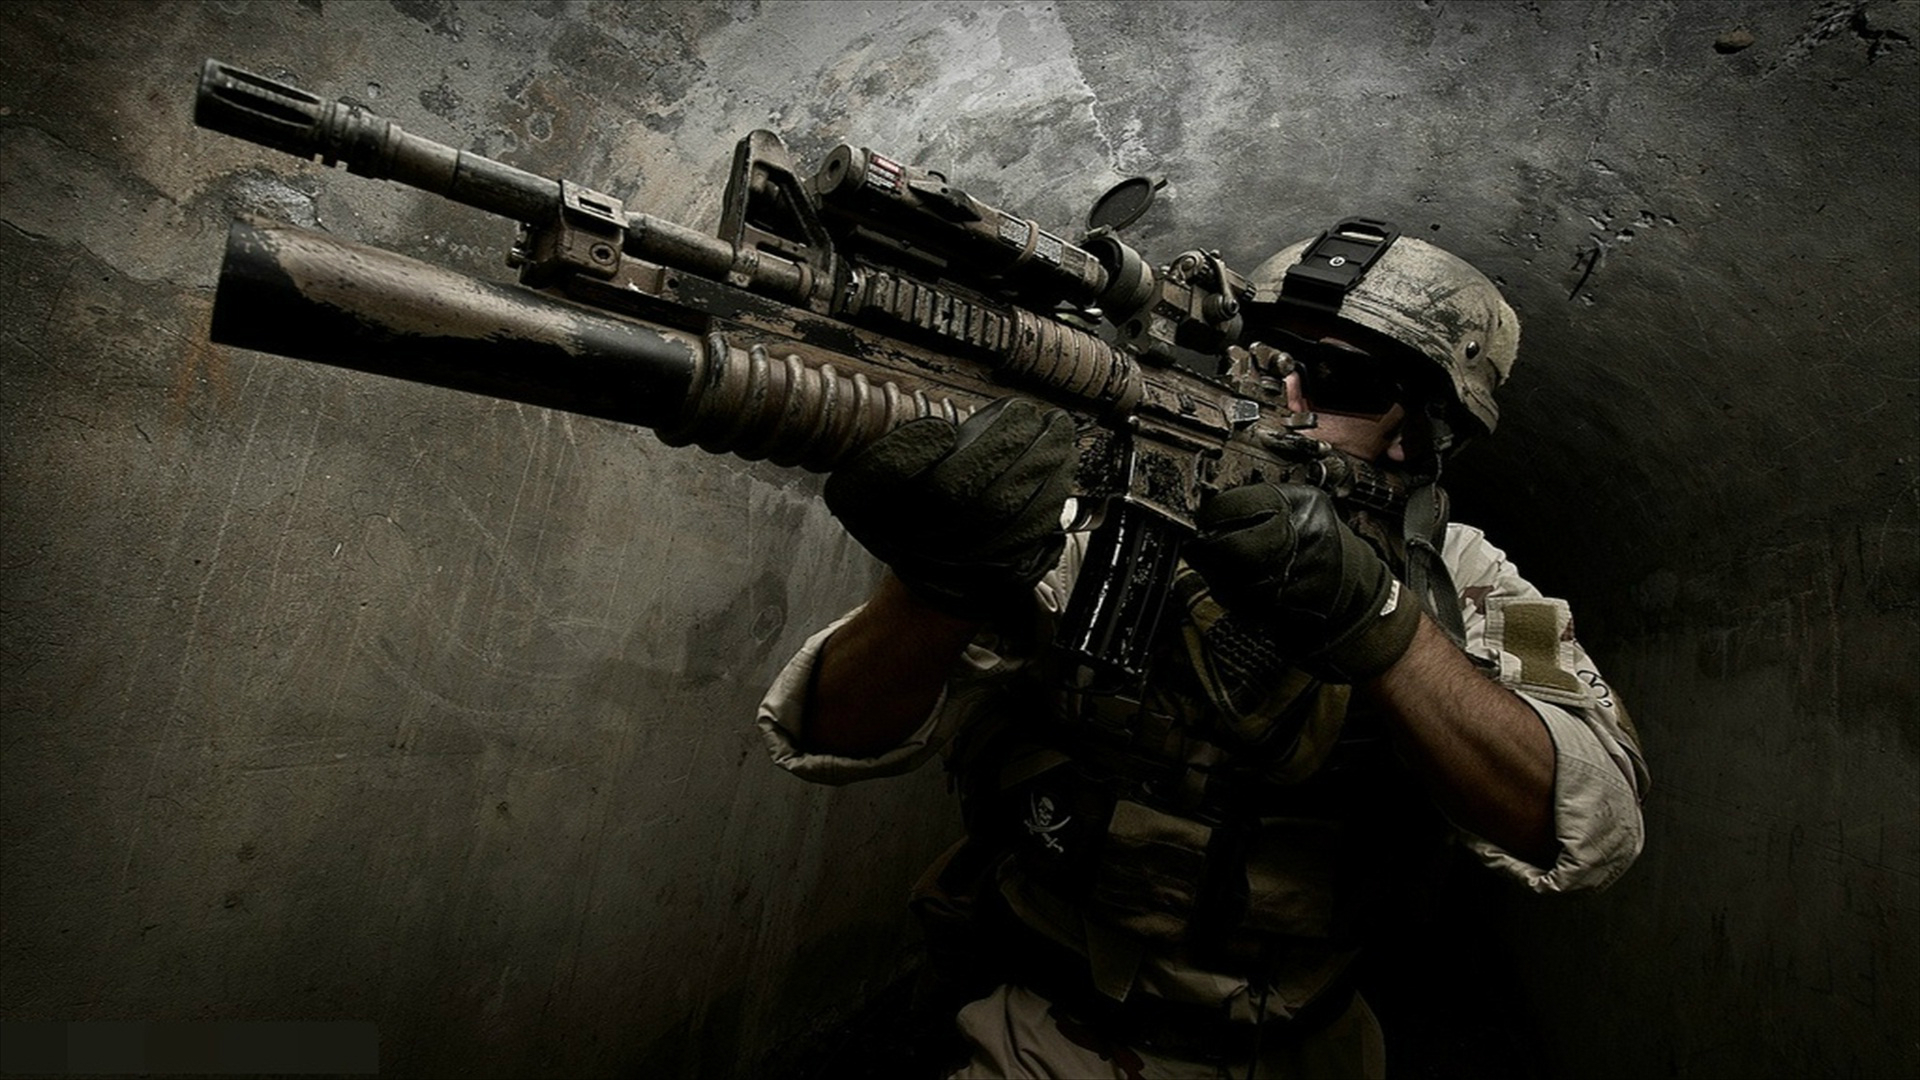 Assault rifle desktop wallpapers download gun Hd Wallpapers 1920x1080